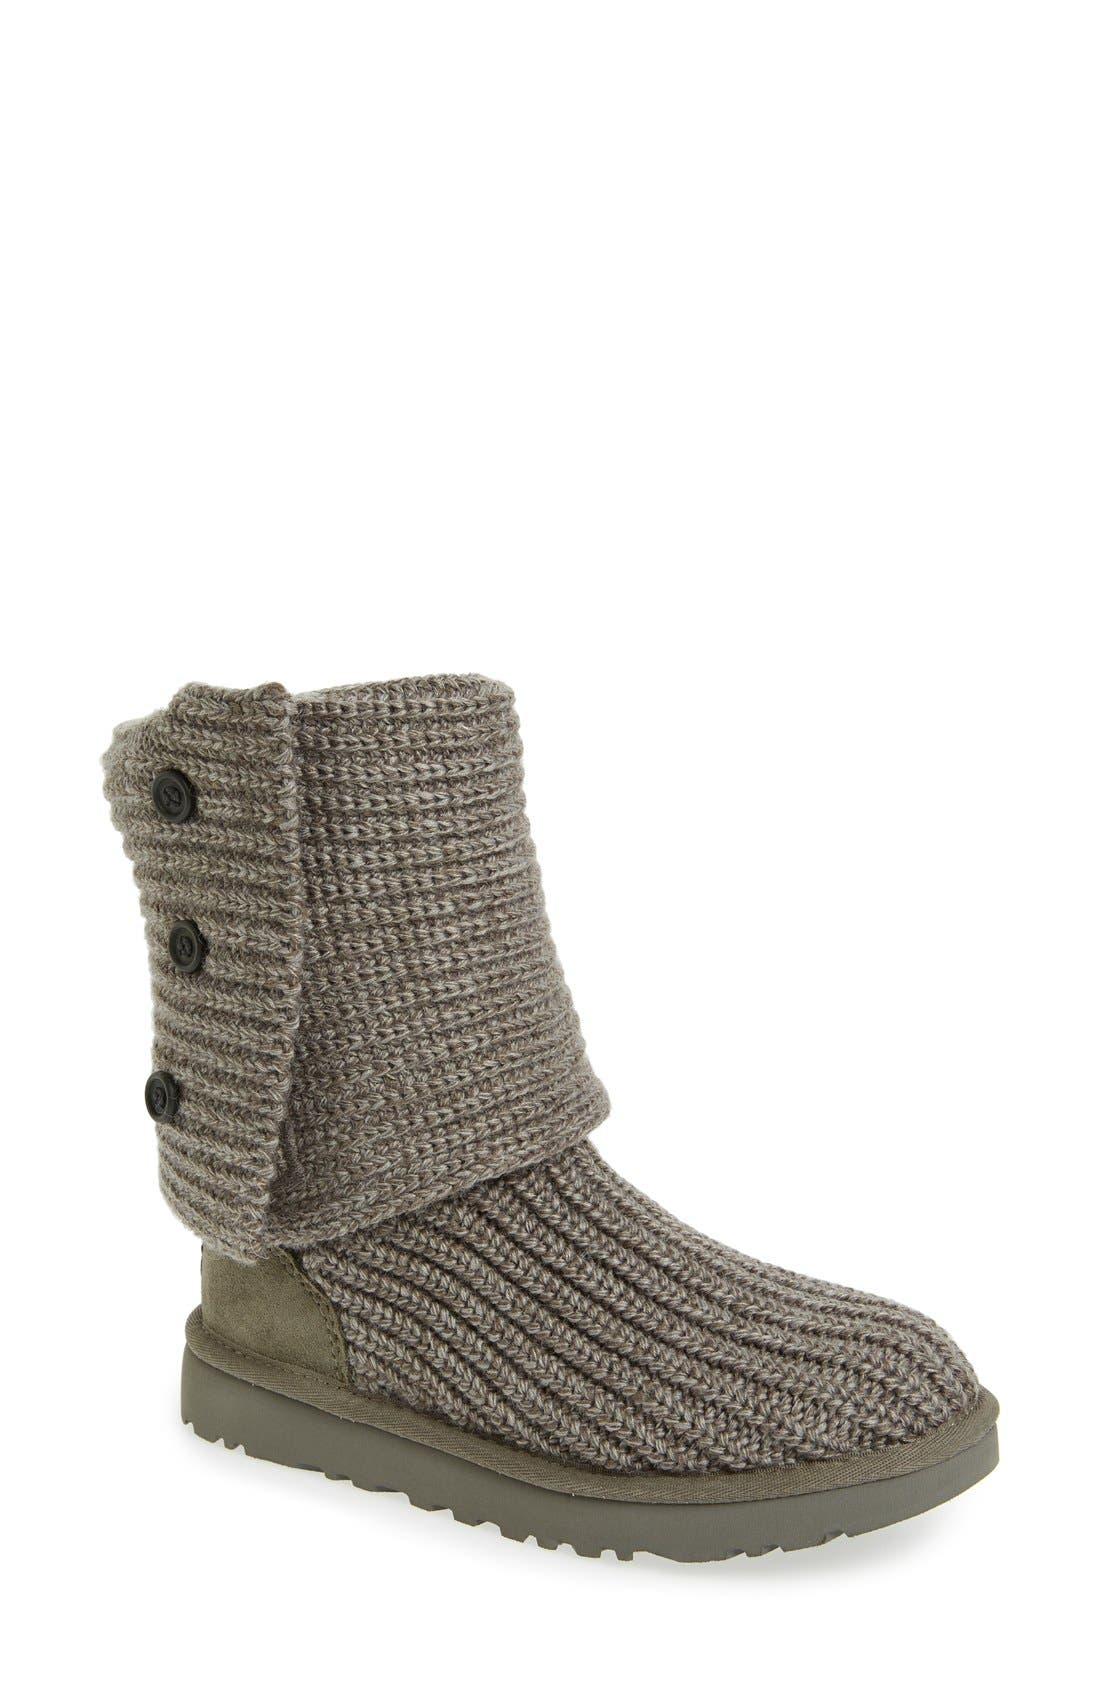 Alternate Image 1 Selected - UGG® Classic Cardy II Knit Boot (Women)